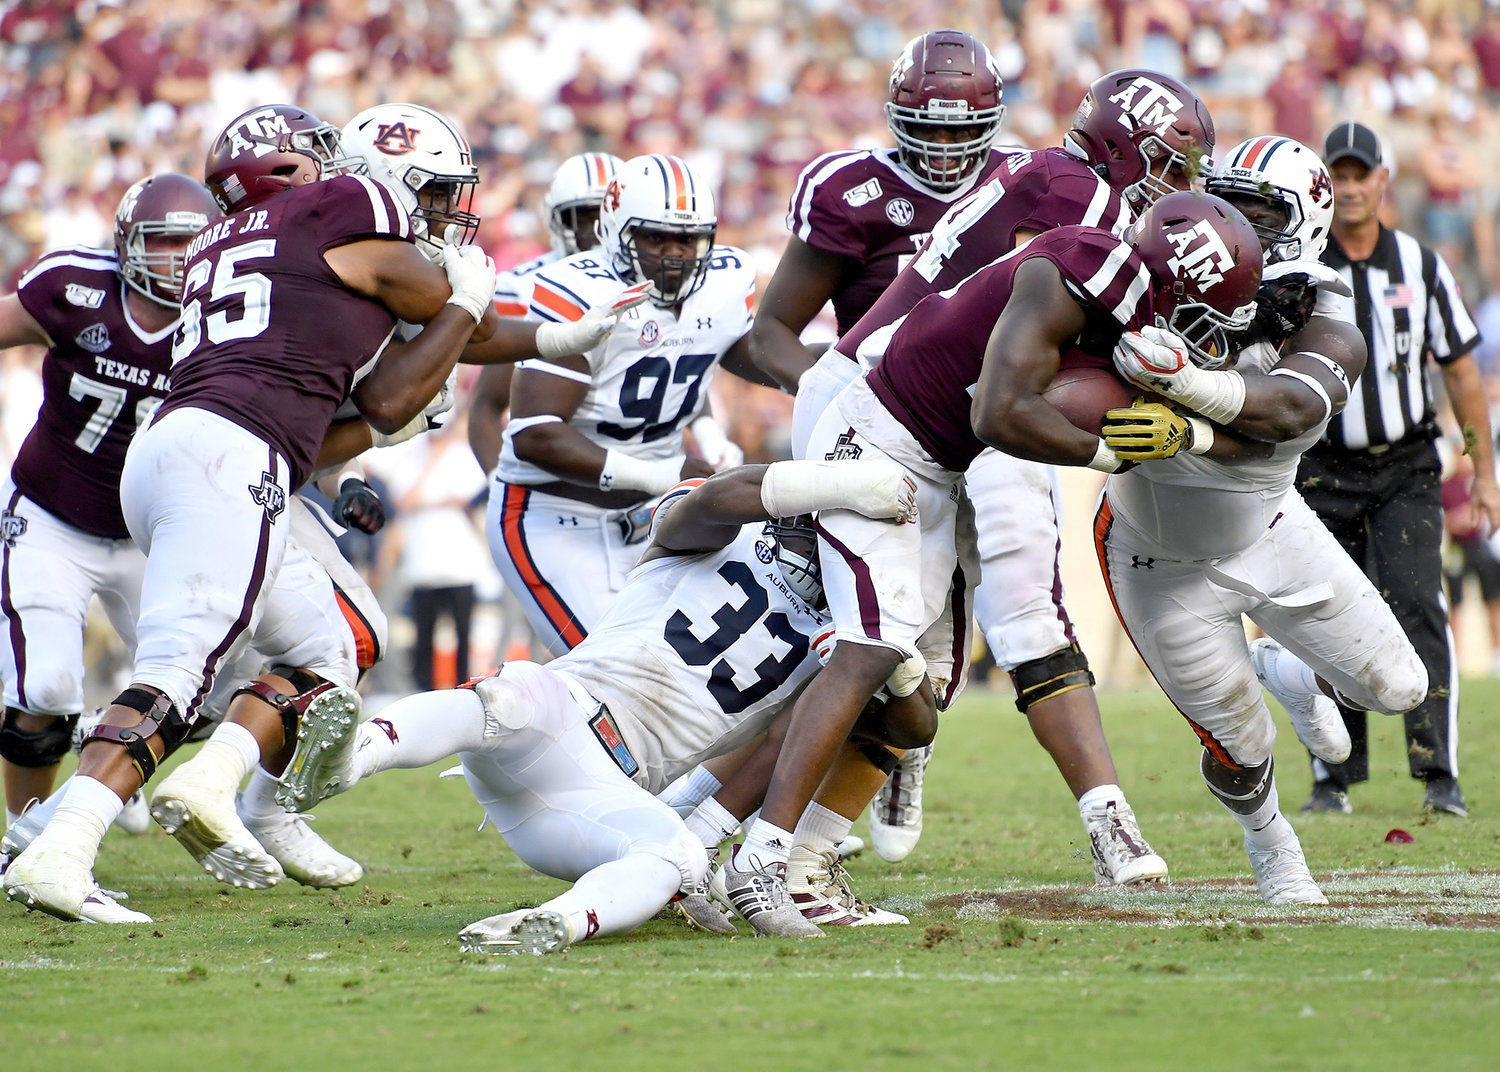 From the second half of an NCAA football game between the Texas A&M Aggies and the Auburn Tigers Saturday, Sept. 21, 2019, at Kyle Field in College Station Texas. Auburn wins 28-20.